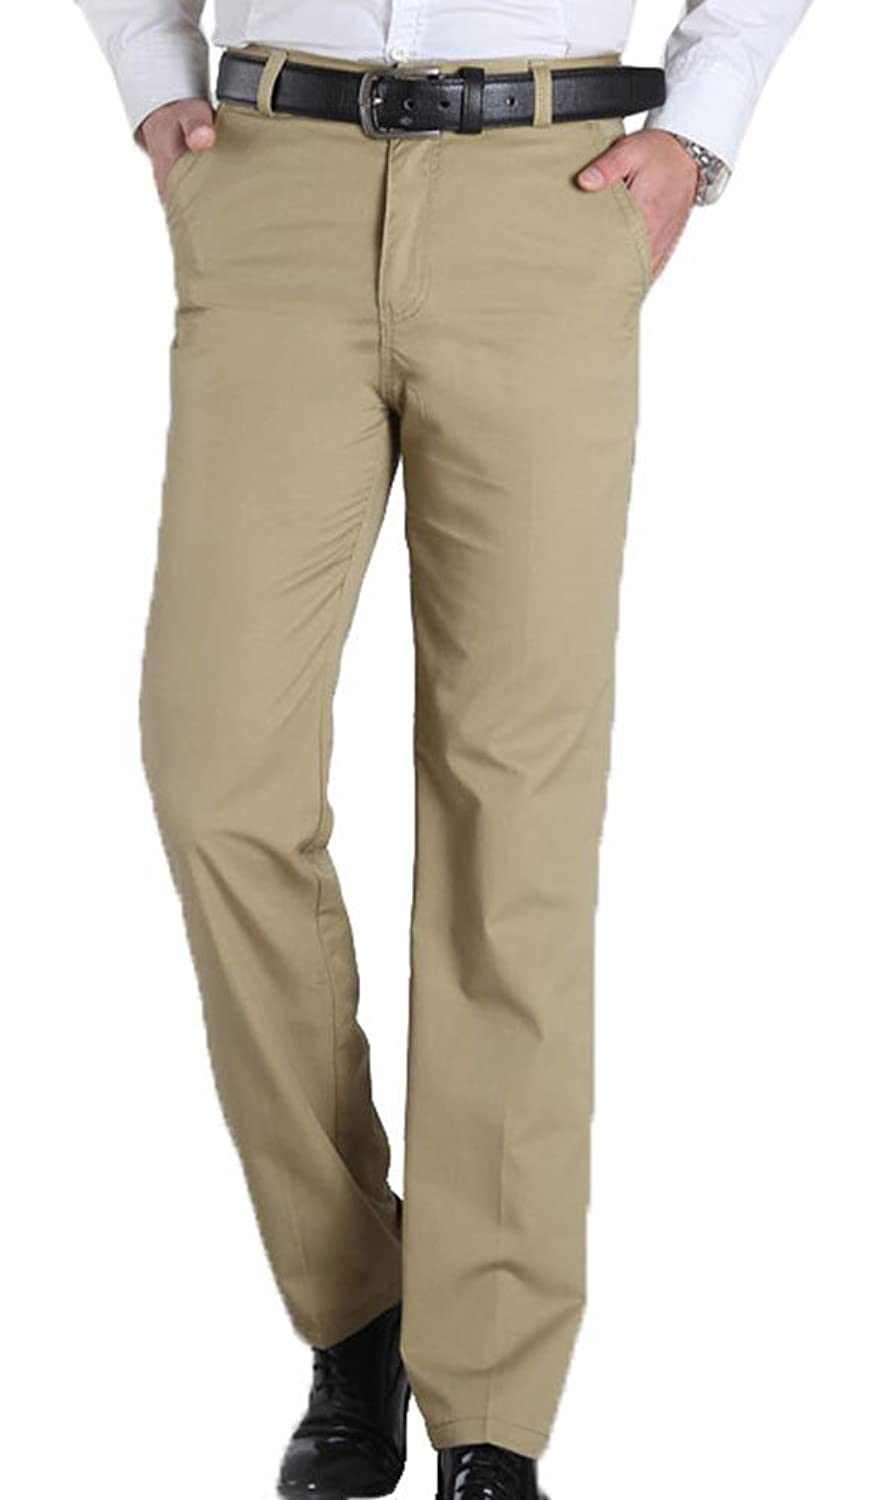 Insun Men's Casual Twill Straight Leg Relaxed Fit Flat Front Pants Beige